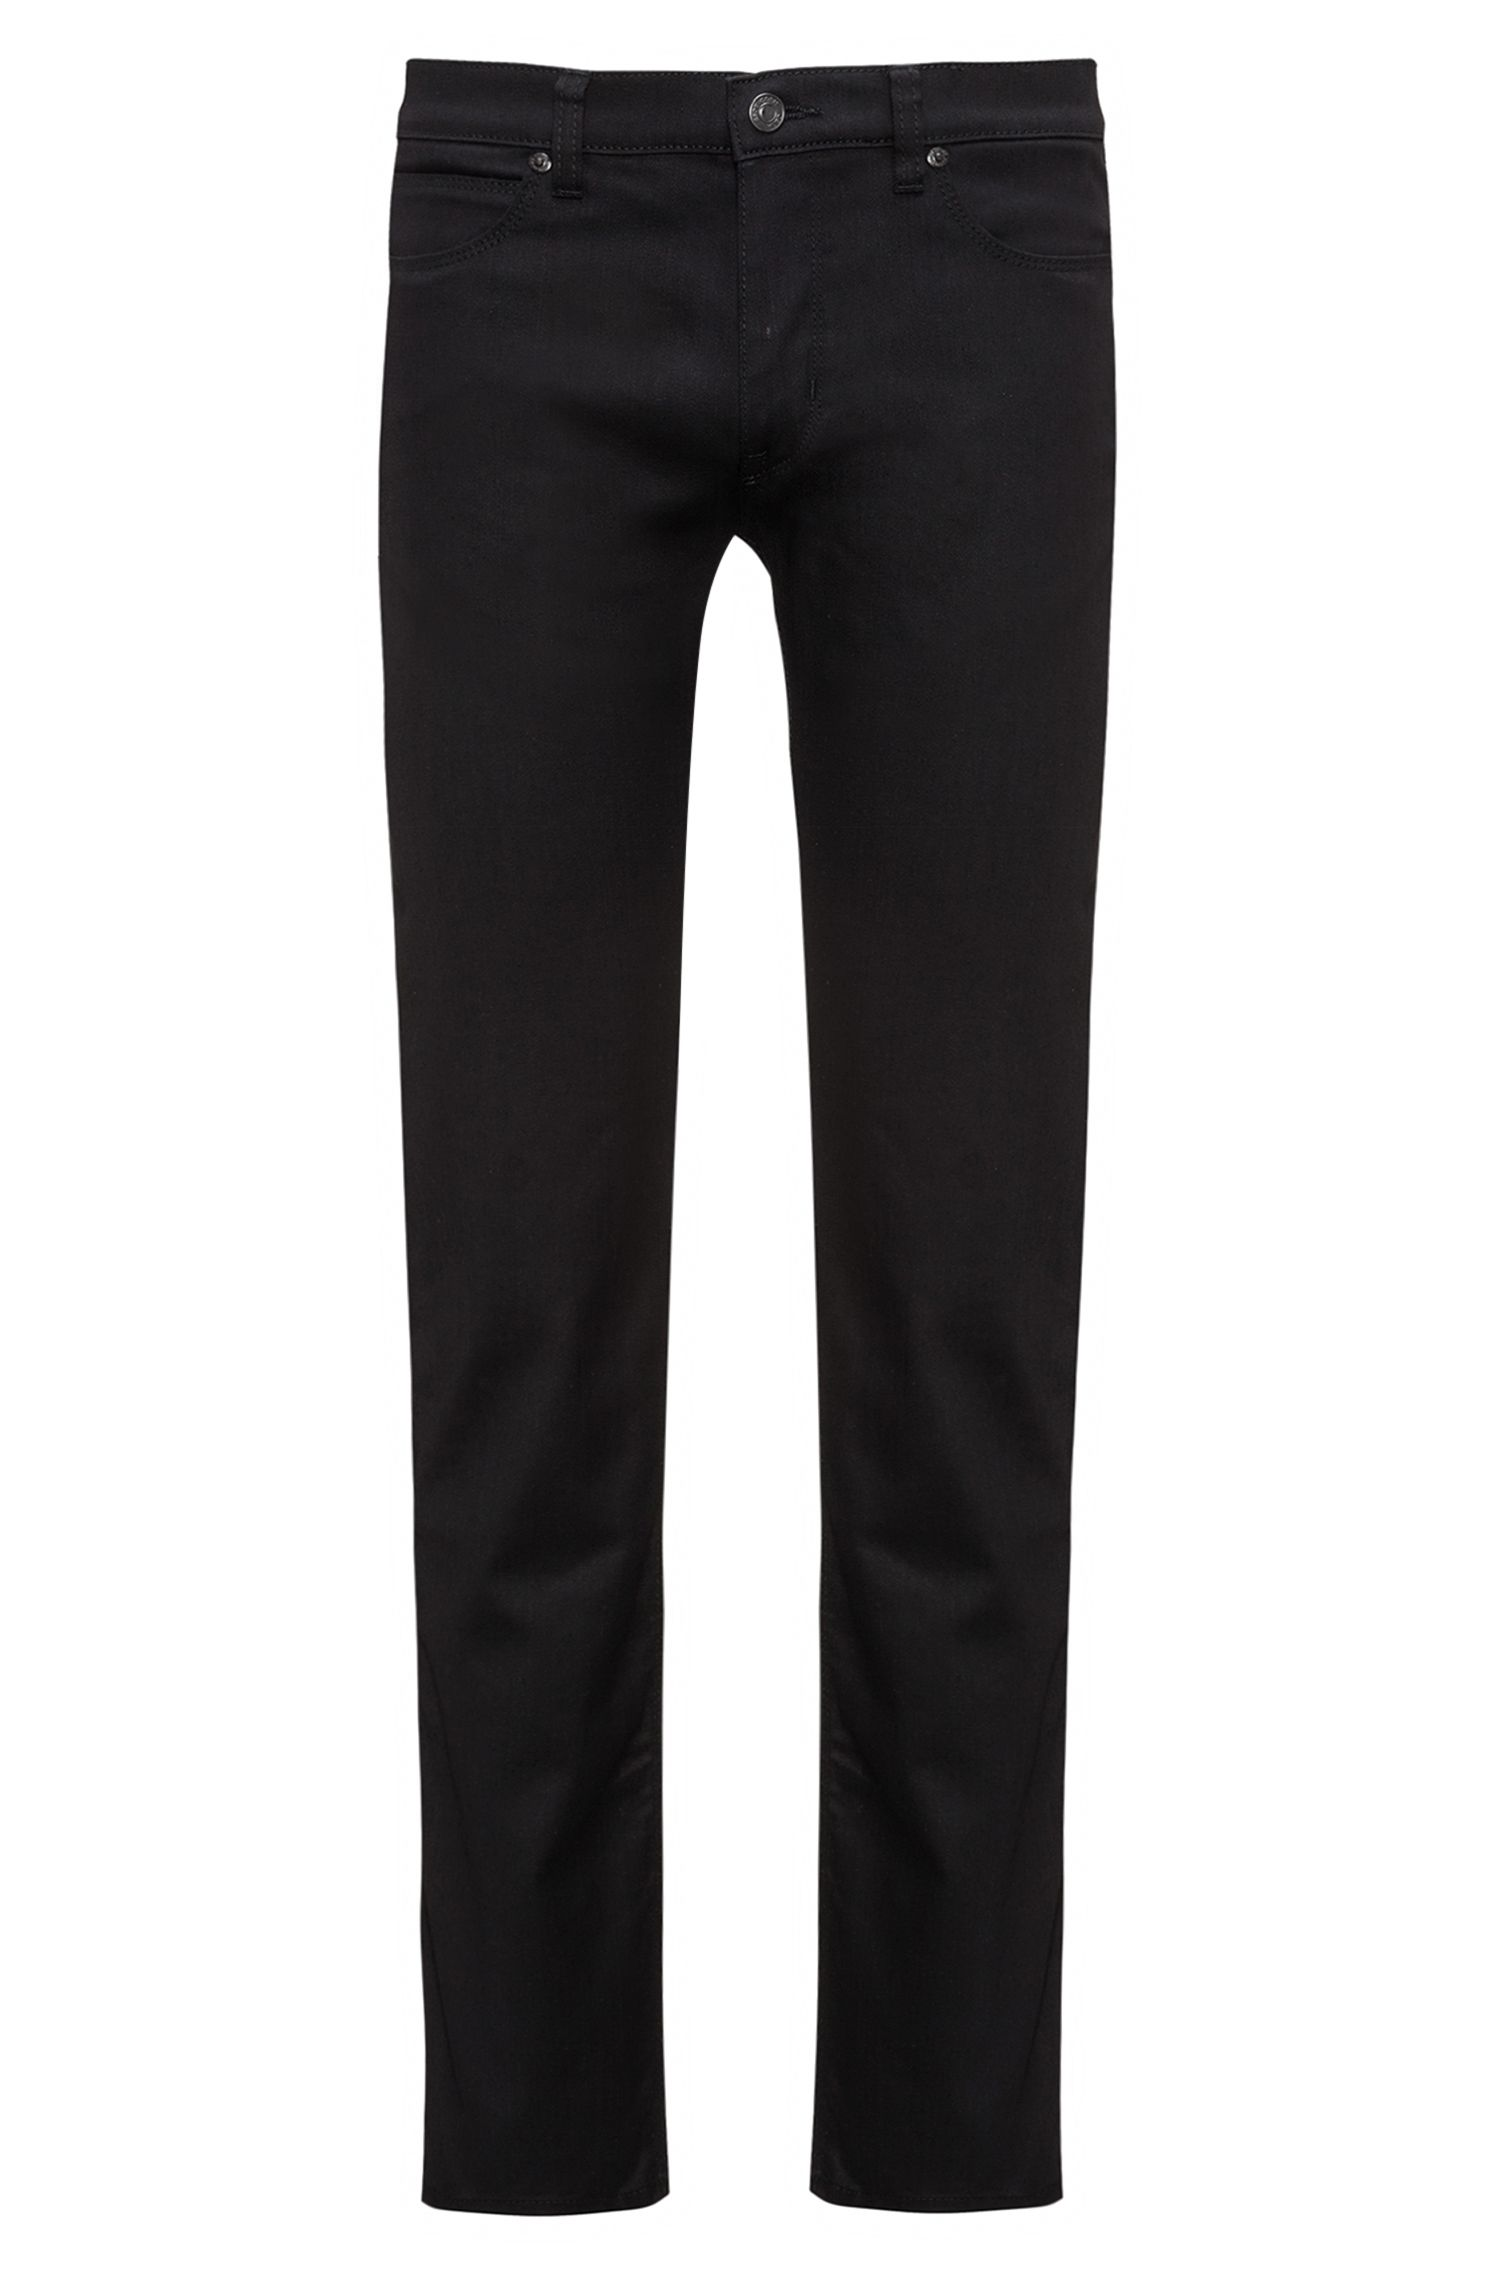 'HUGO 708' | Slim Fit, Stretch Cotton Jeans